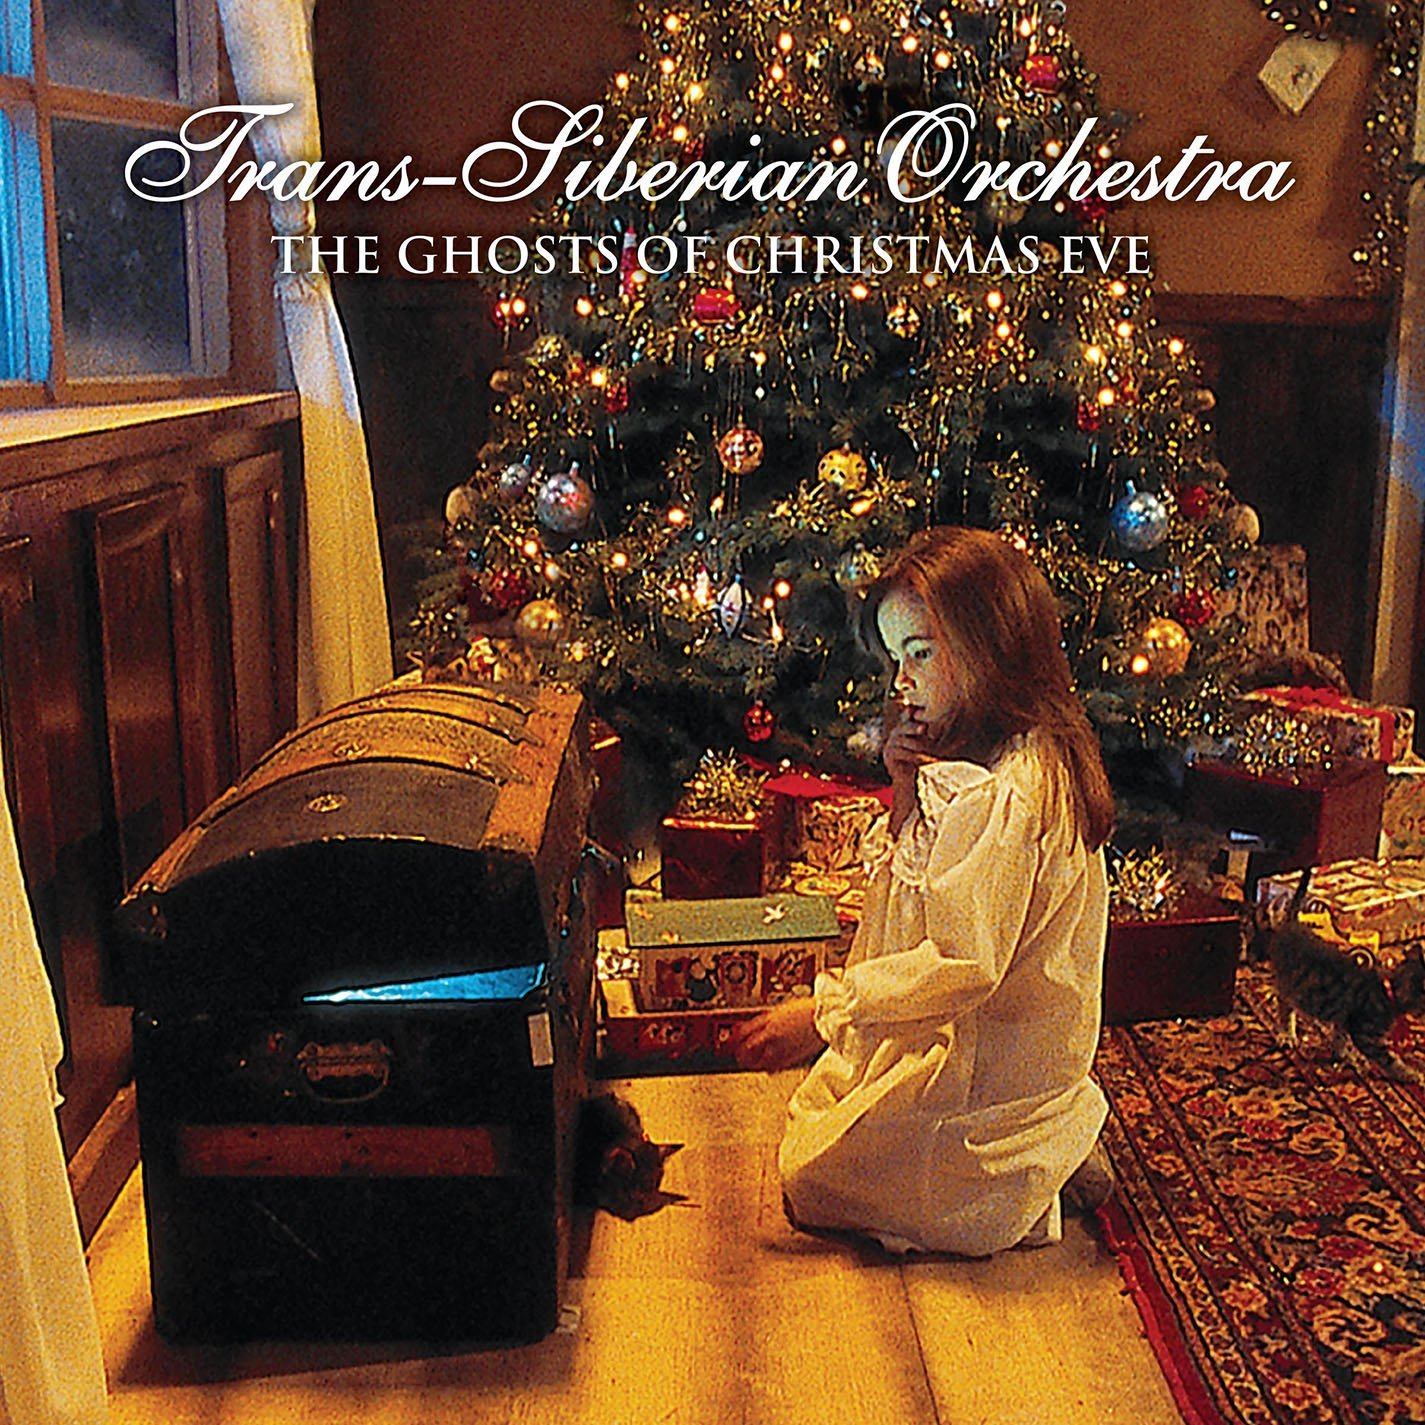 Tso Ghosts Of Christmas Eve 2020 Trans Siberian Orchestra   The Ghosts Of Christmas Eve | daddykool